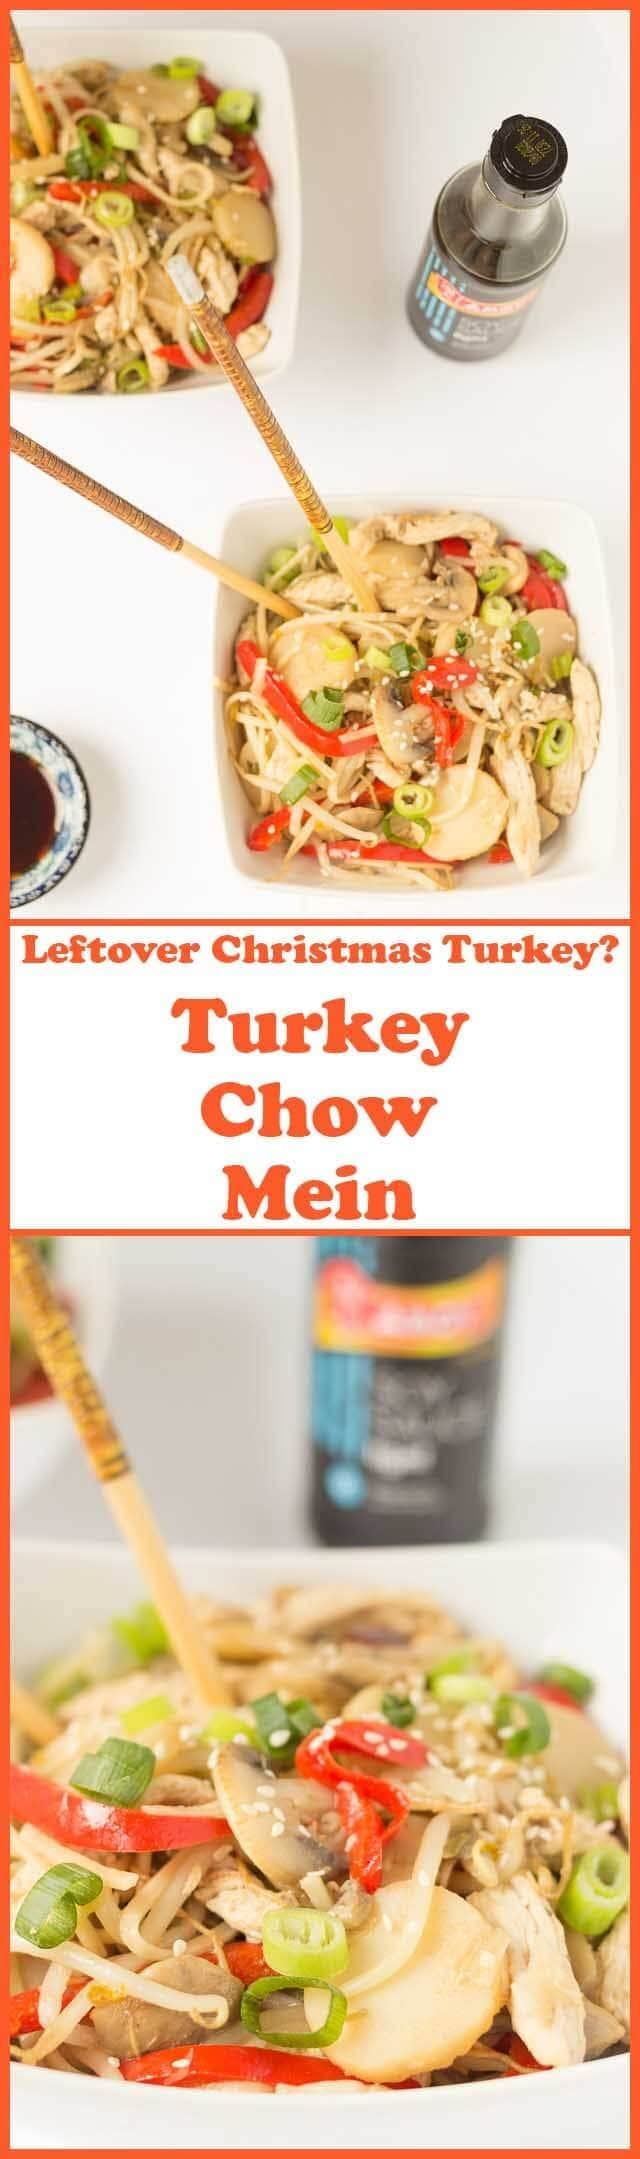 Turkey chow mein is a delicious quick healthy way to use up any leftover turkey from Thanksgiving or Christmas. Reinvent your turkey with this unique combination of Asian flavours!